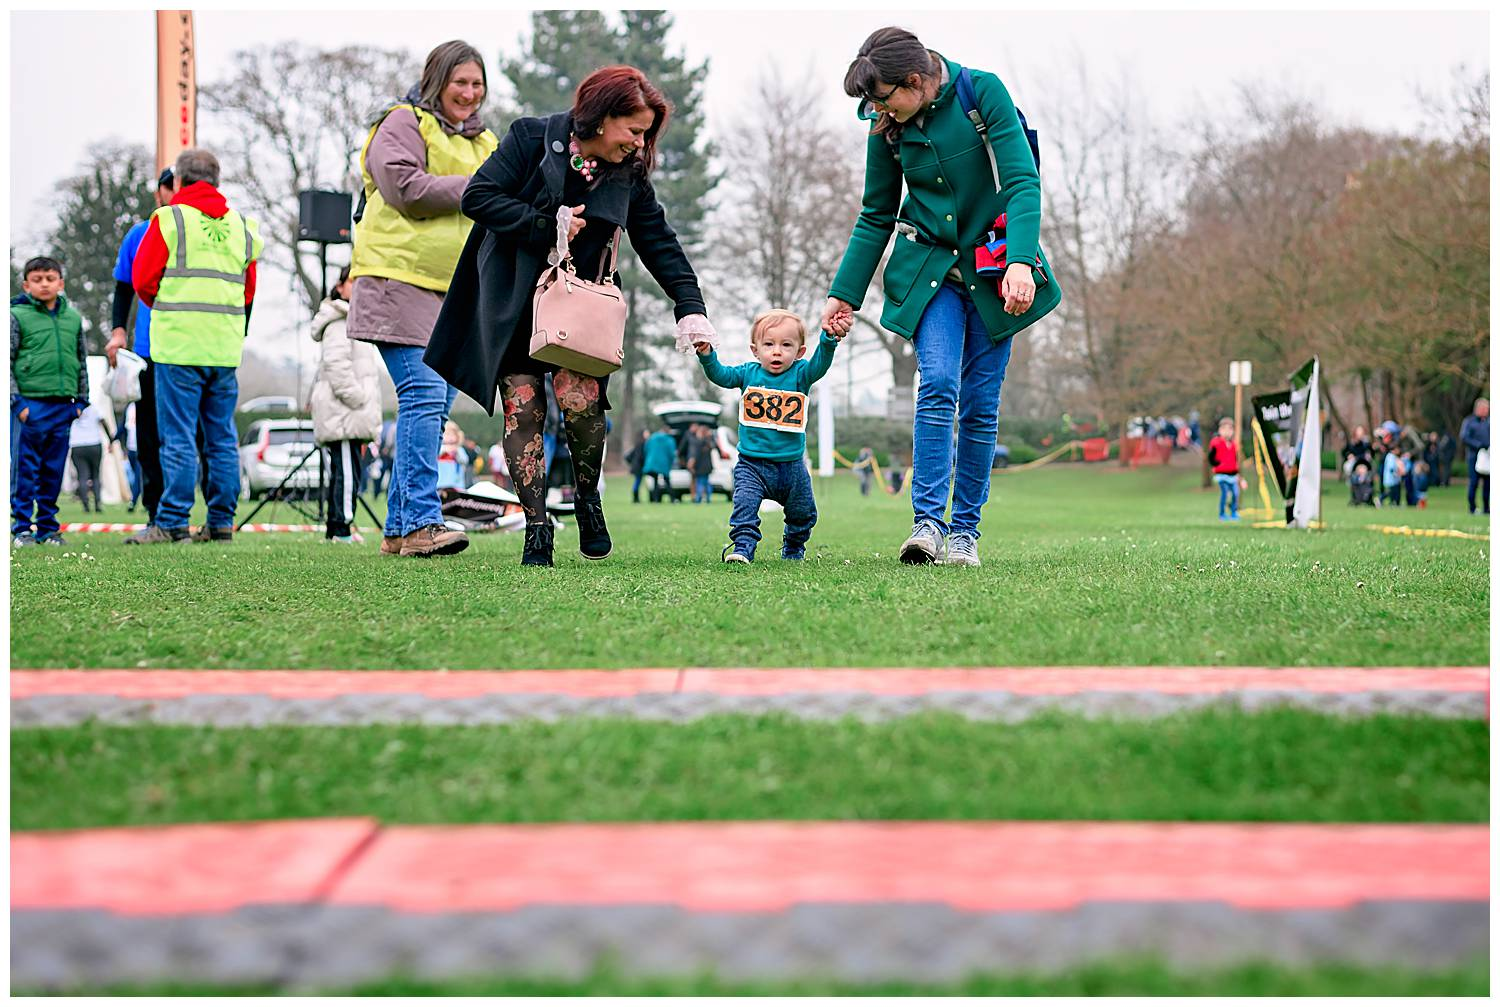 1 year old boy being helped by his mother and grandmother to cross the finish line of a 1k fun run